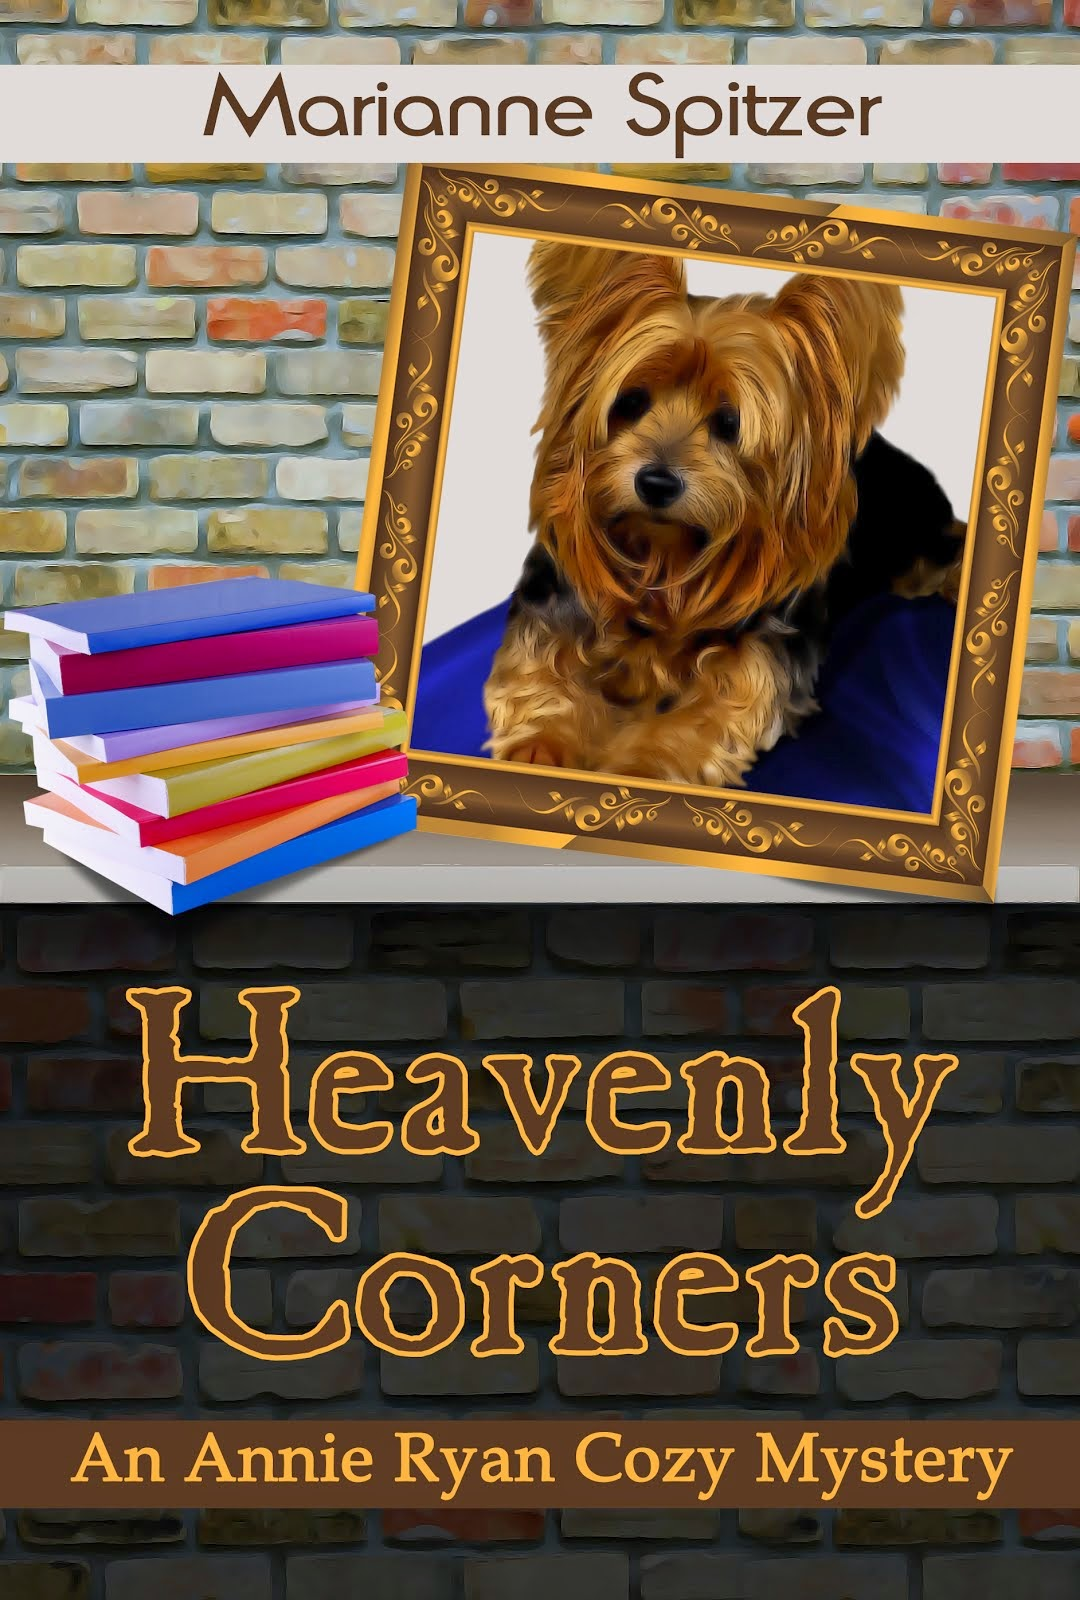 Heavenly Corners